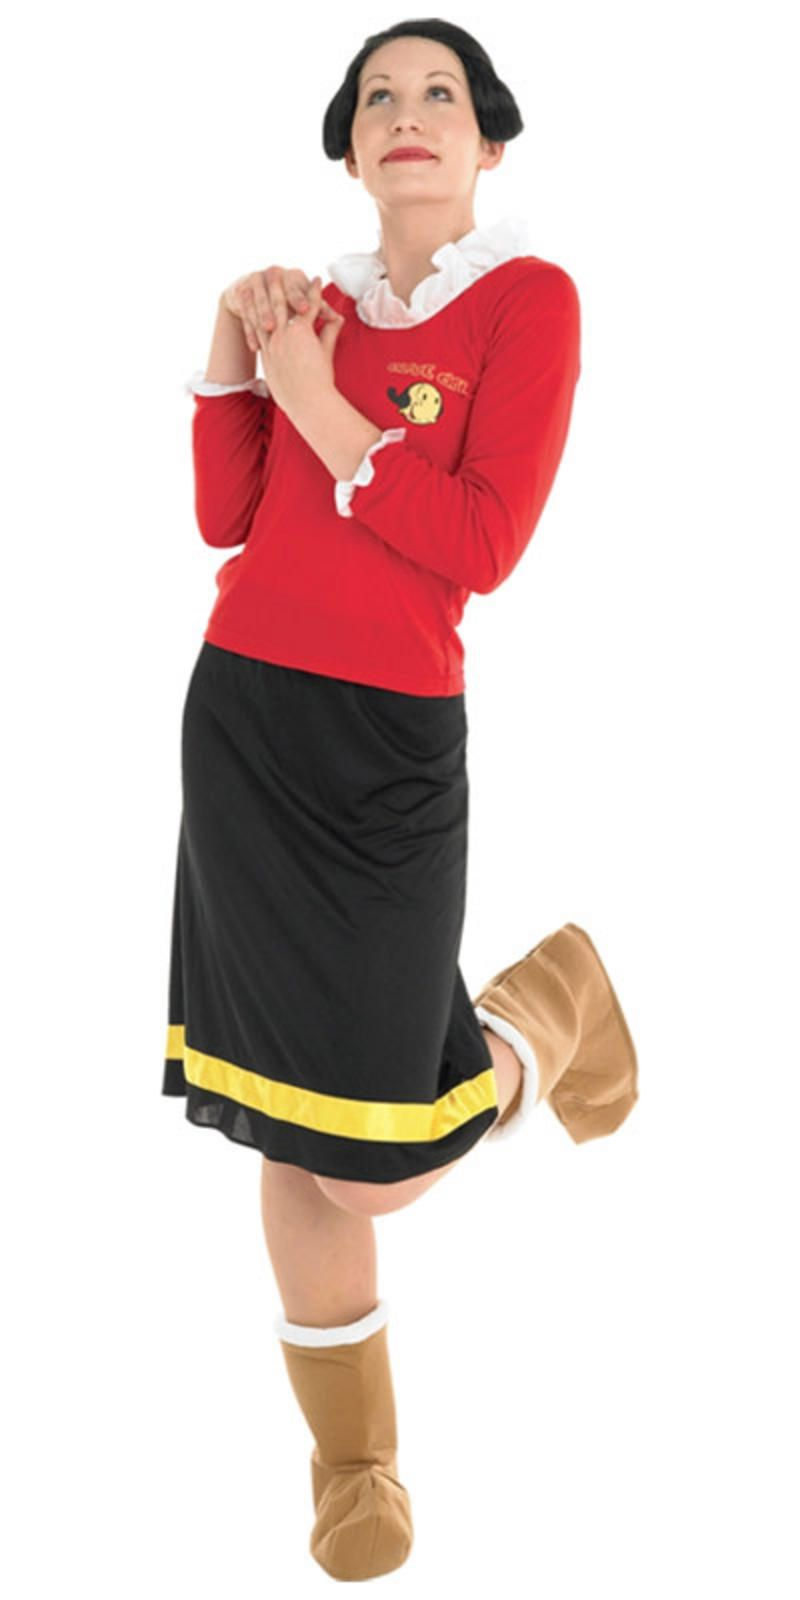 Olive oyl hairstyle google search halloween fall pinterest buy ladies popeye costume game costume cartoon costumes sailor costumes couple costume and olive oyl costume for quick despatch solutioingenieria Images